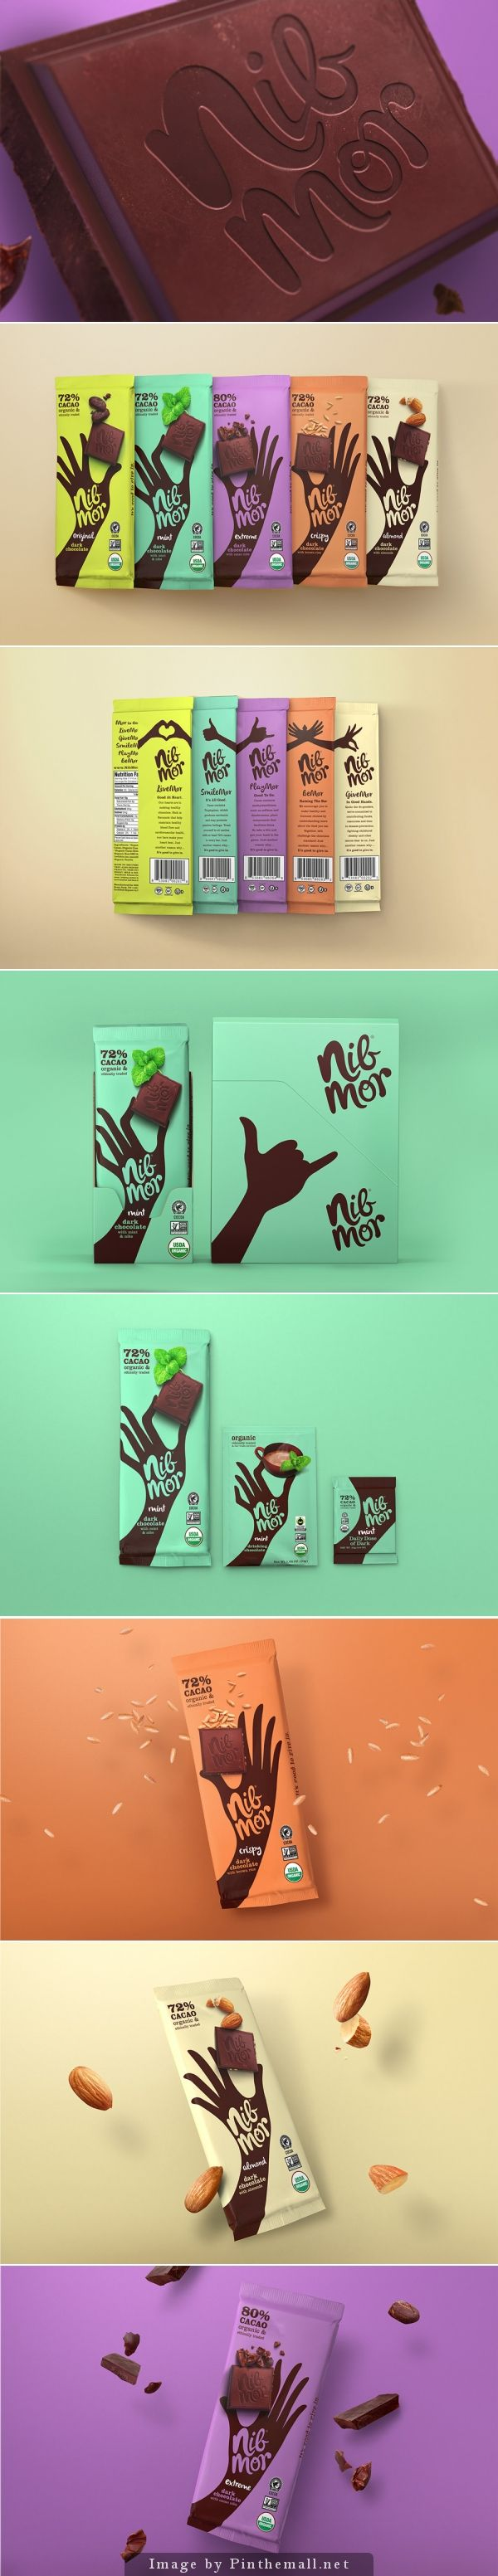 Nib Mor Packaging & branding